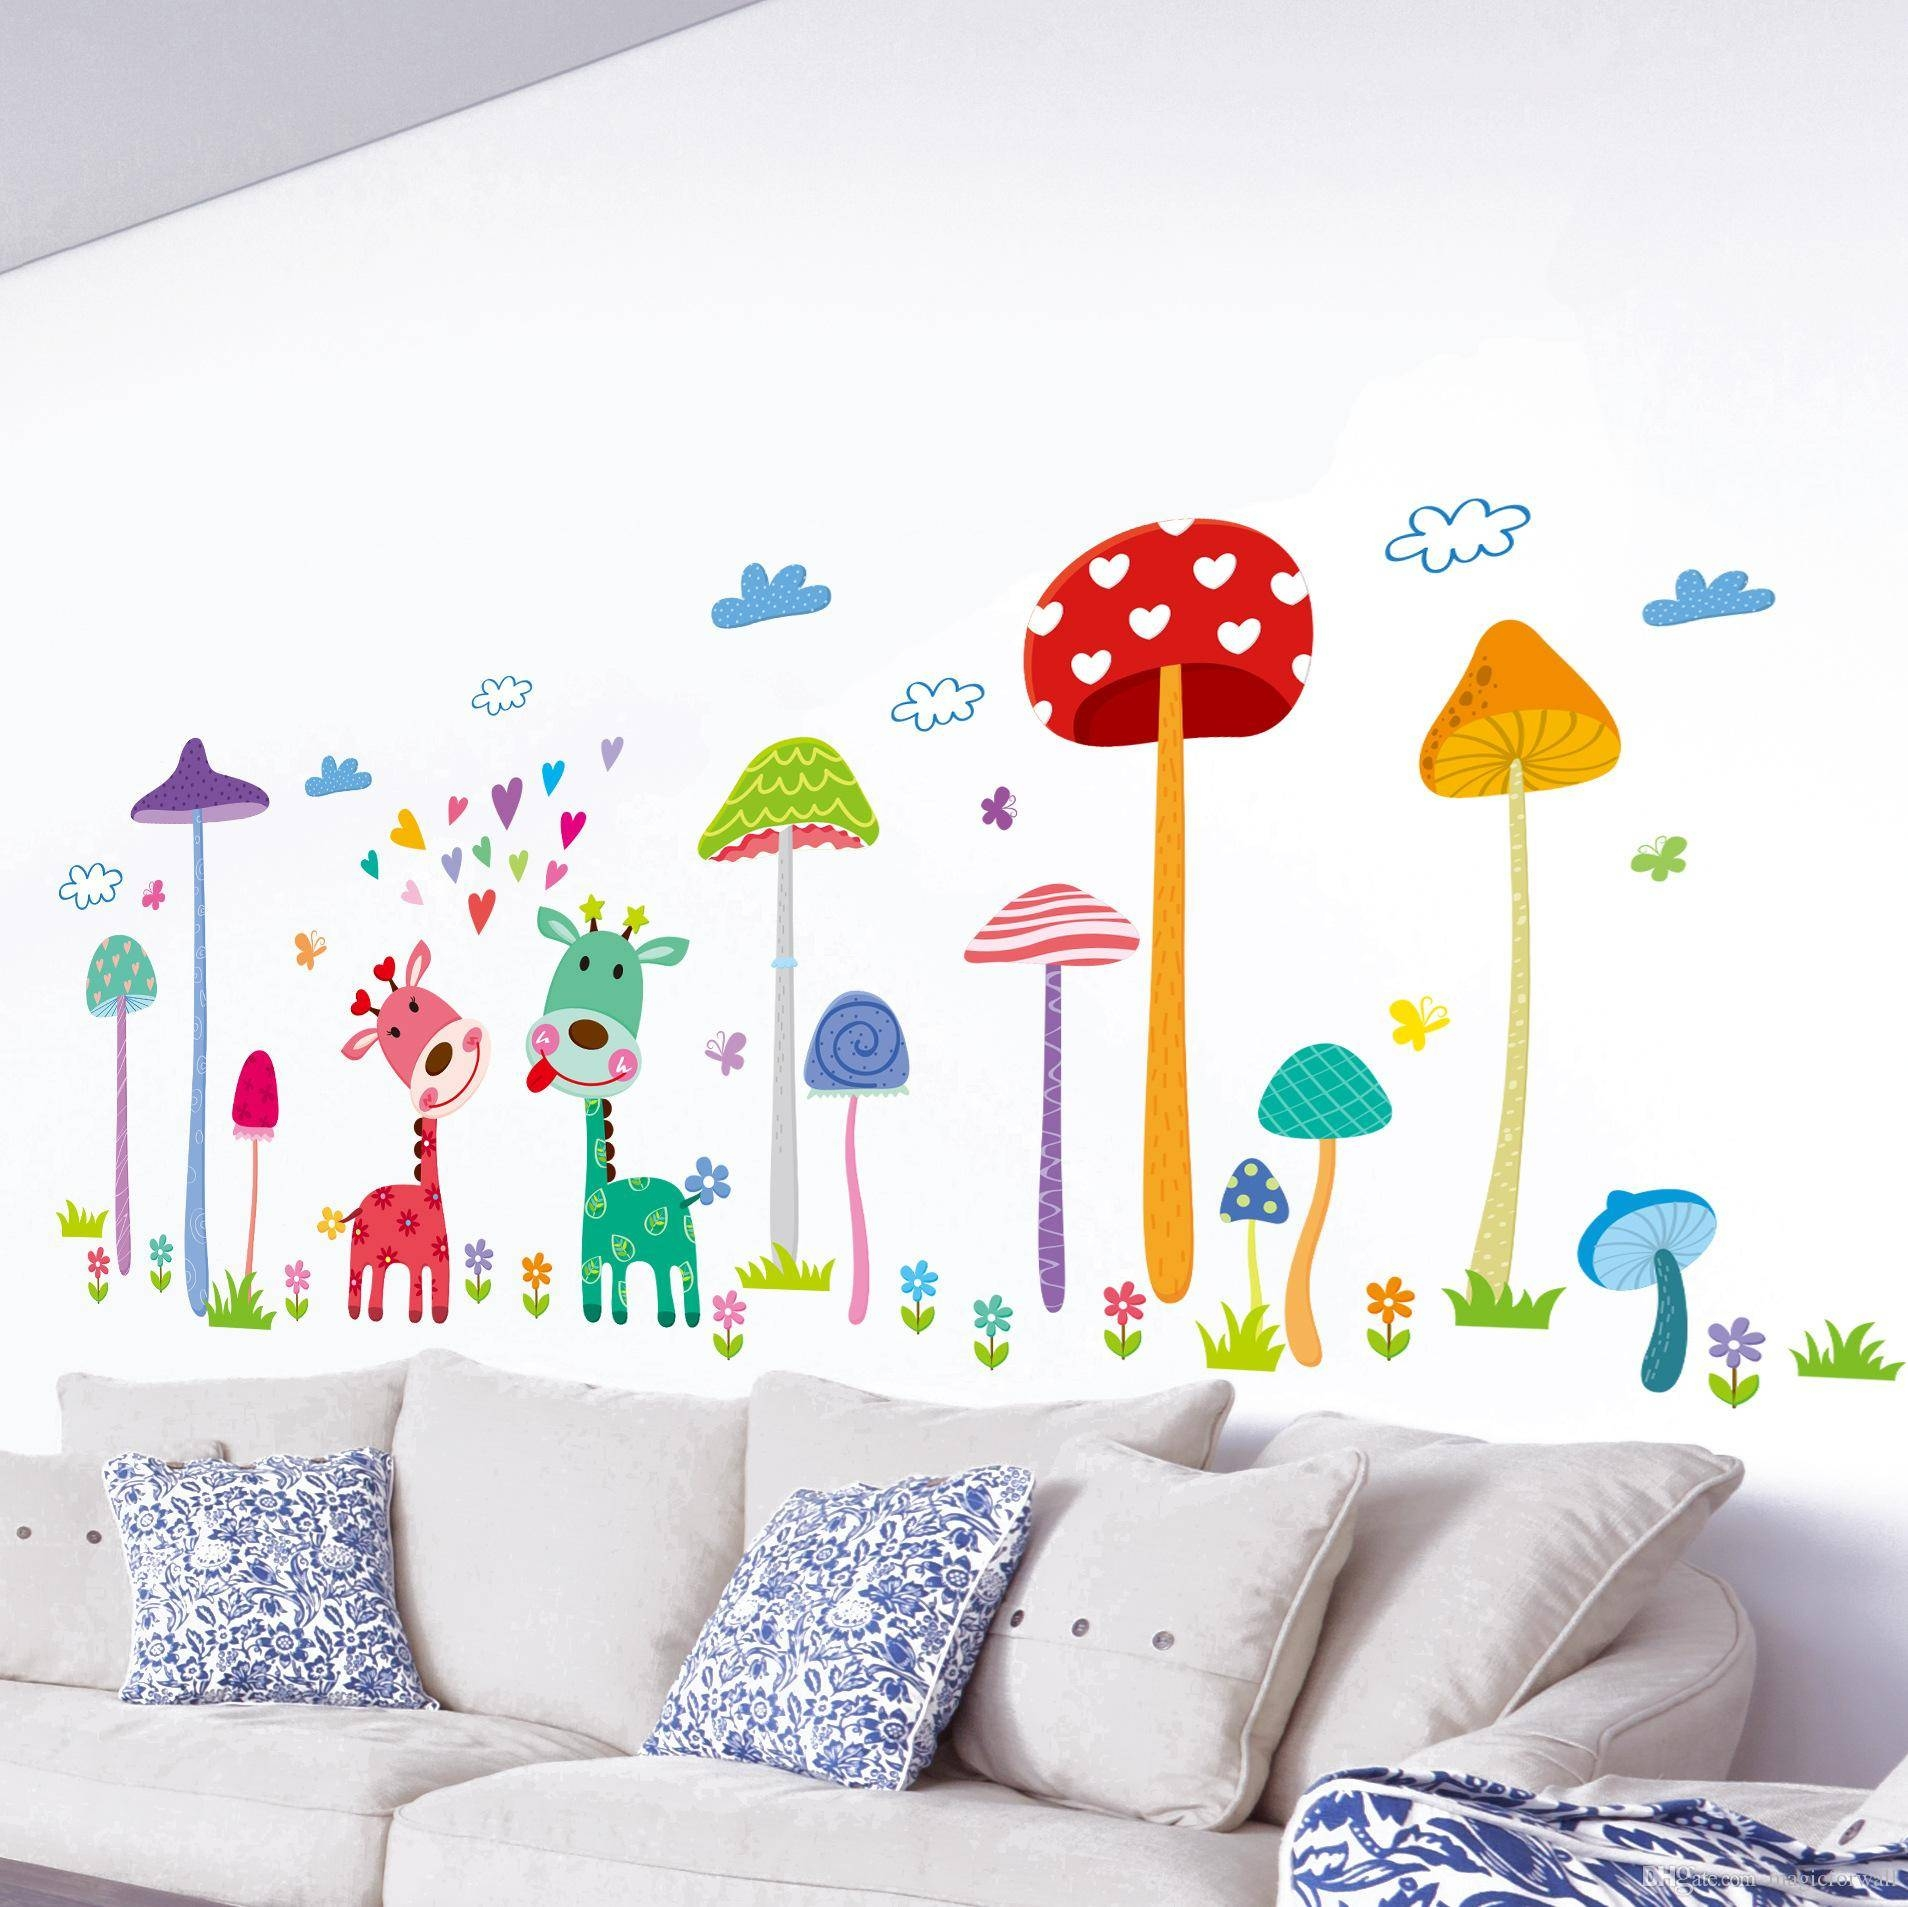 Forest Mushroom Deer Animals Home Wall Art Mural Decor Kids Babies With Newest Mushroom Wall Art (View 5 of 20)